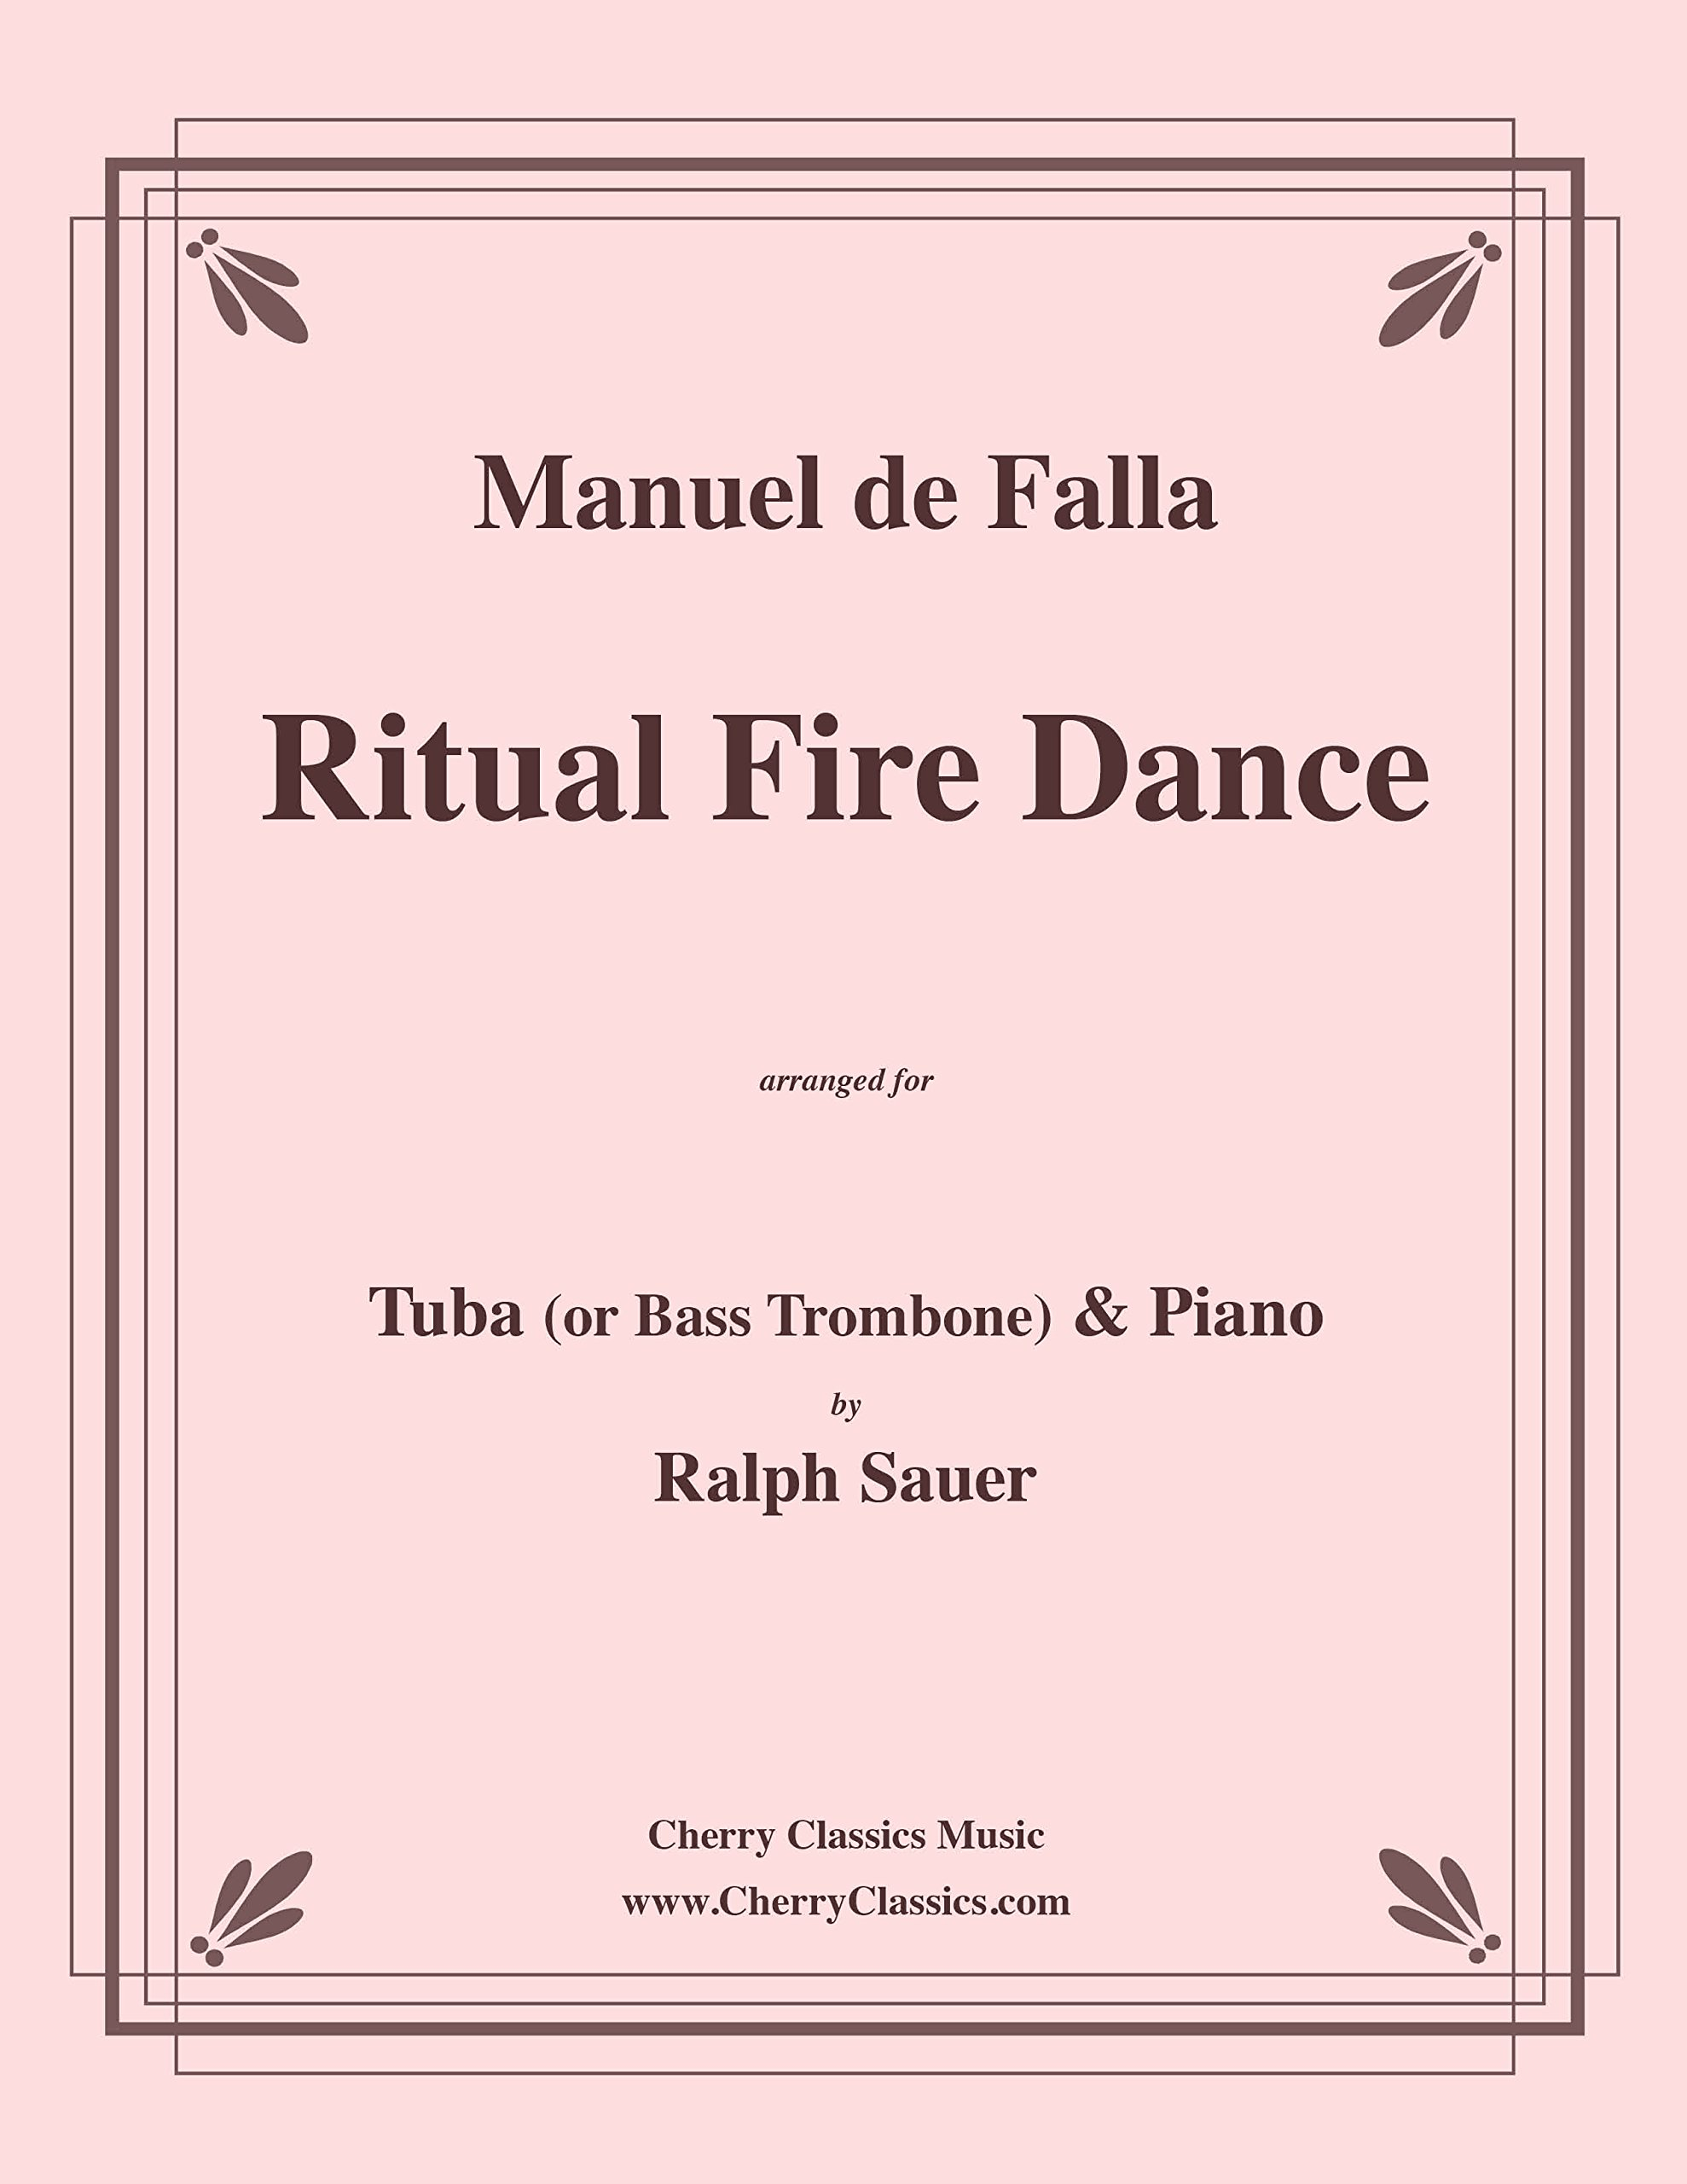 Ritual Fire Dance for Tuba or Bass Trombone and Piano by Manuel de Falla and arranged by Ralph Sauer pdf